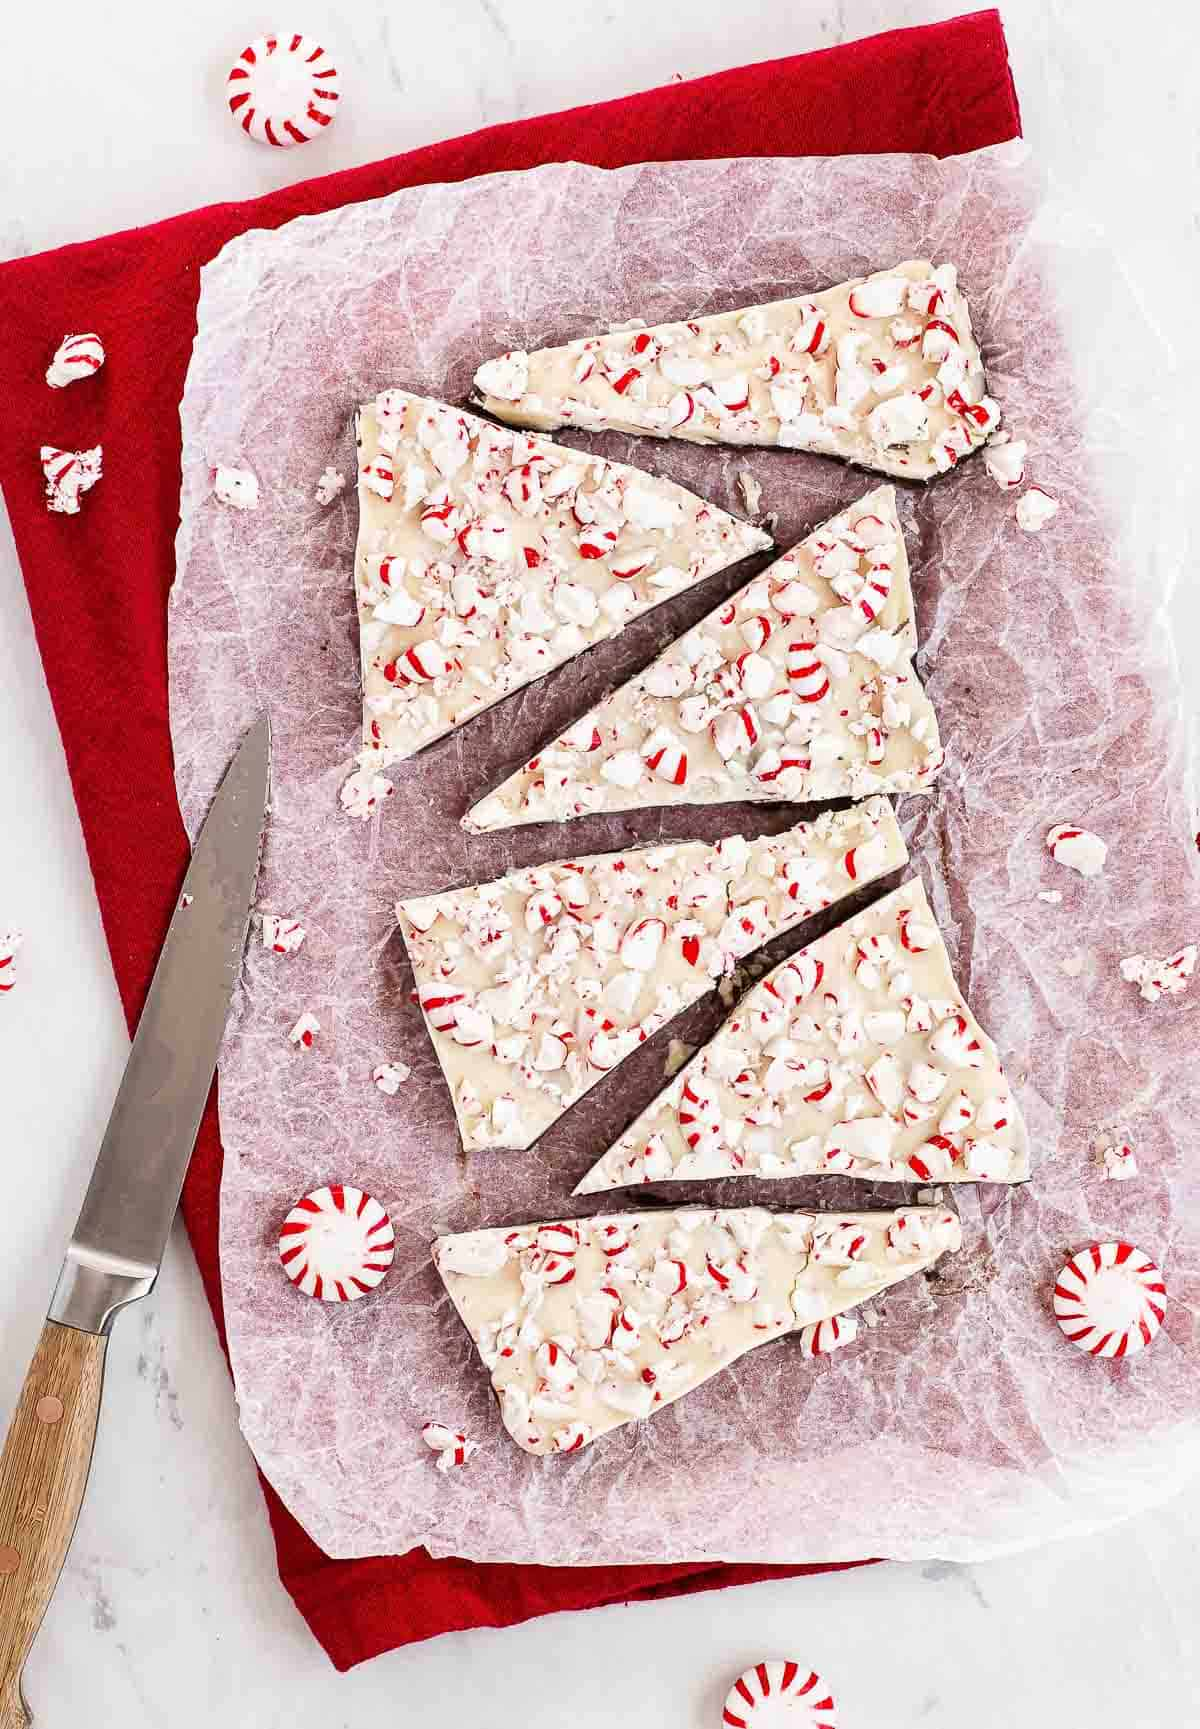 peppermint bark recipe on parchment paper